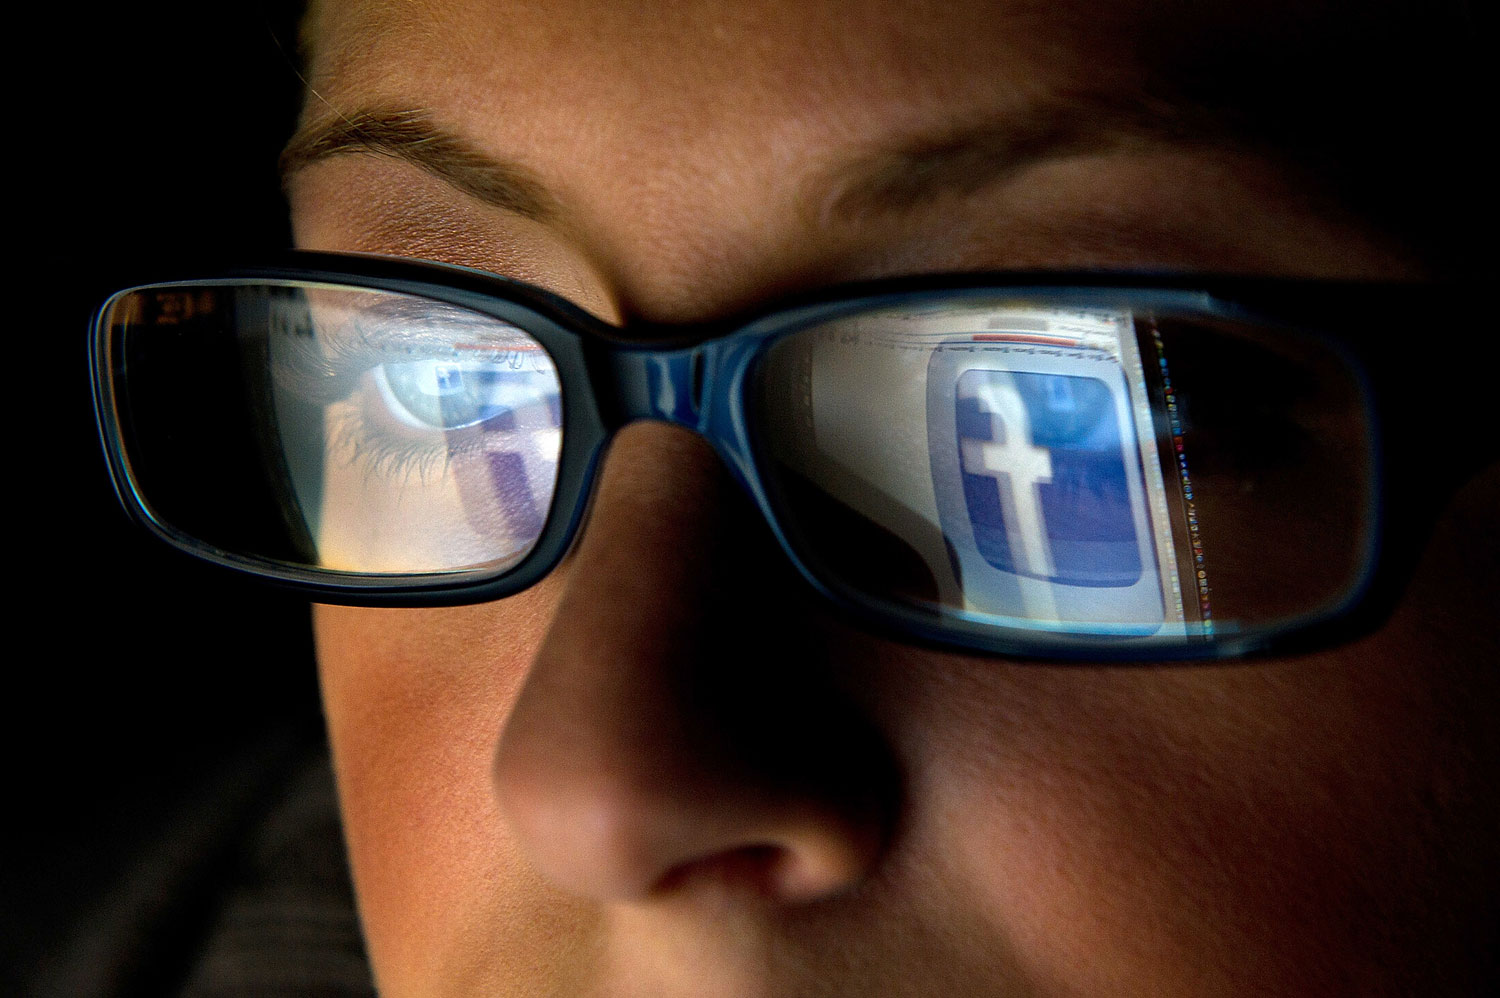 The Facebook Inc. logo is reflected in the eyeglasses of a user in San Francisco, Dec. 7, 2011.